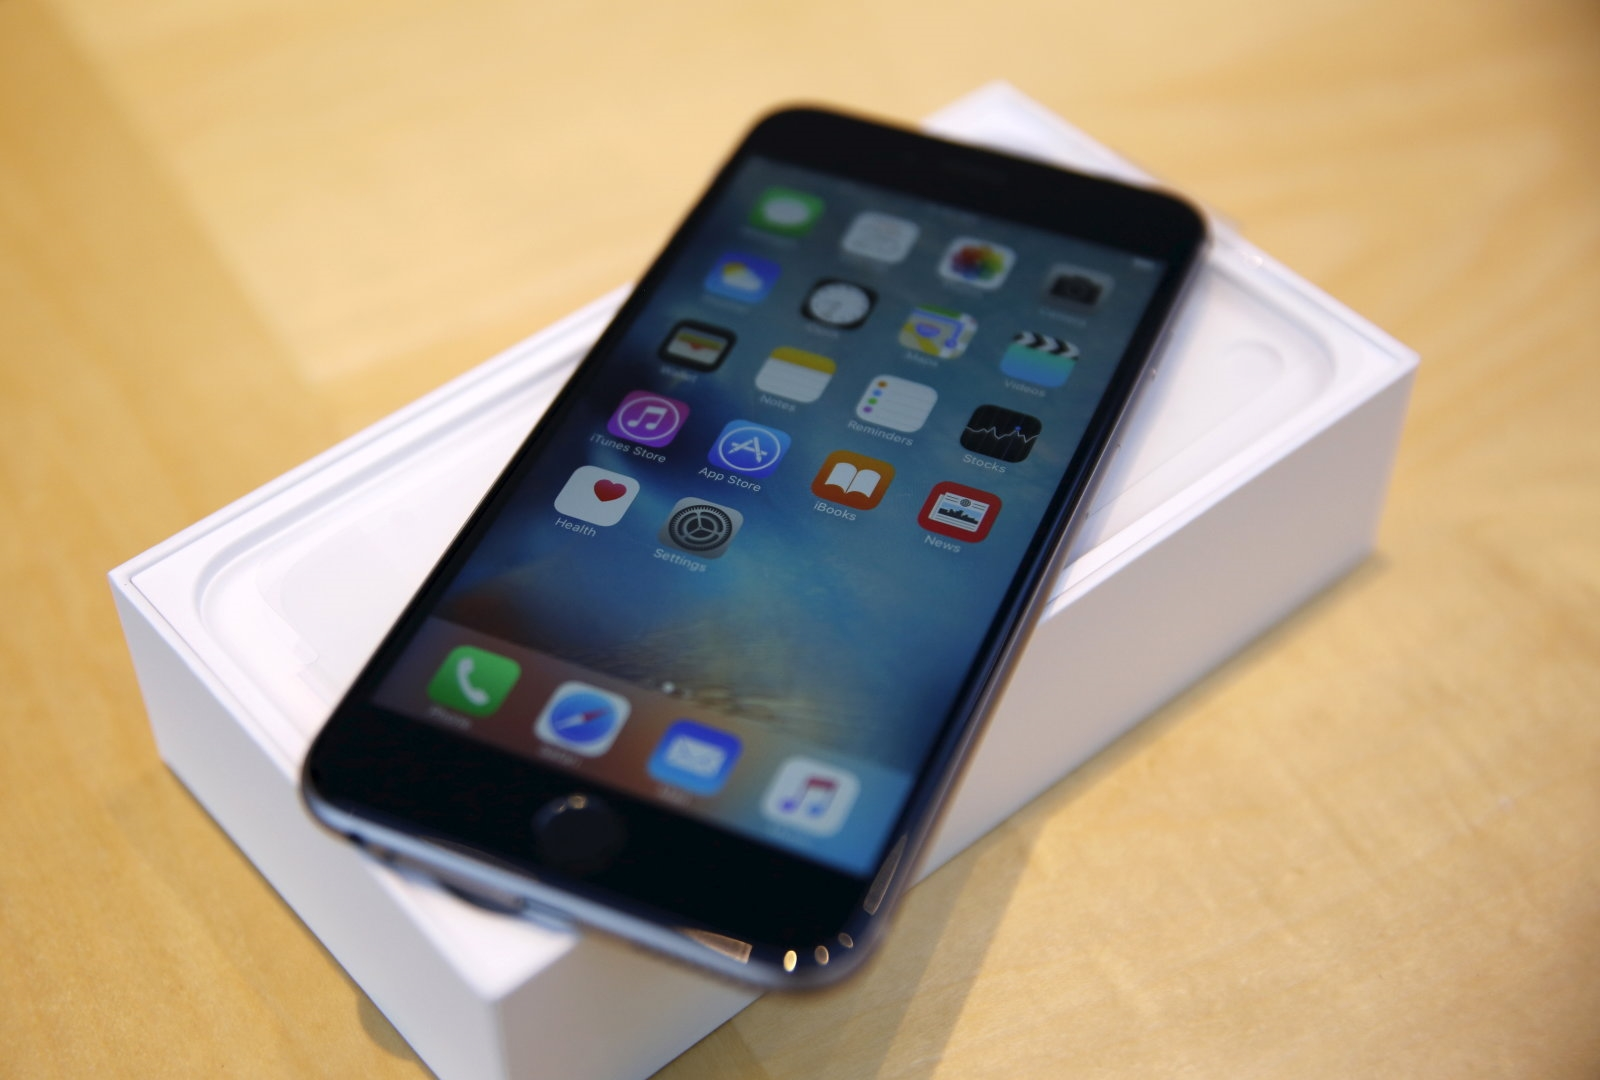 Apple says slower performance of older iPhones is intentional | DeviceDaily.com